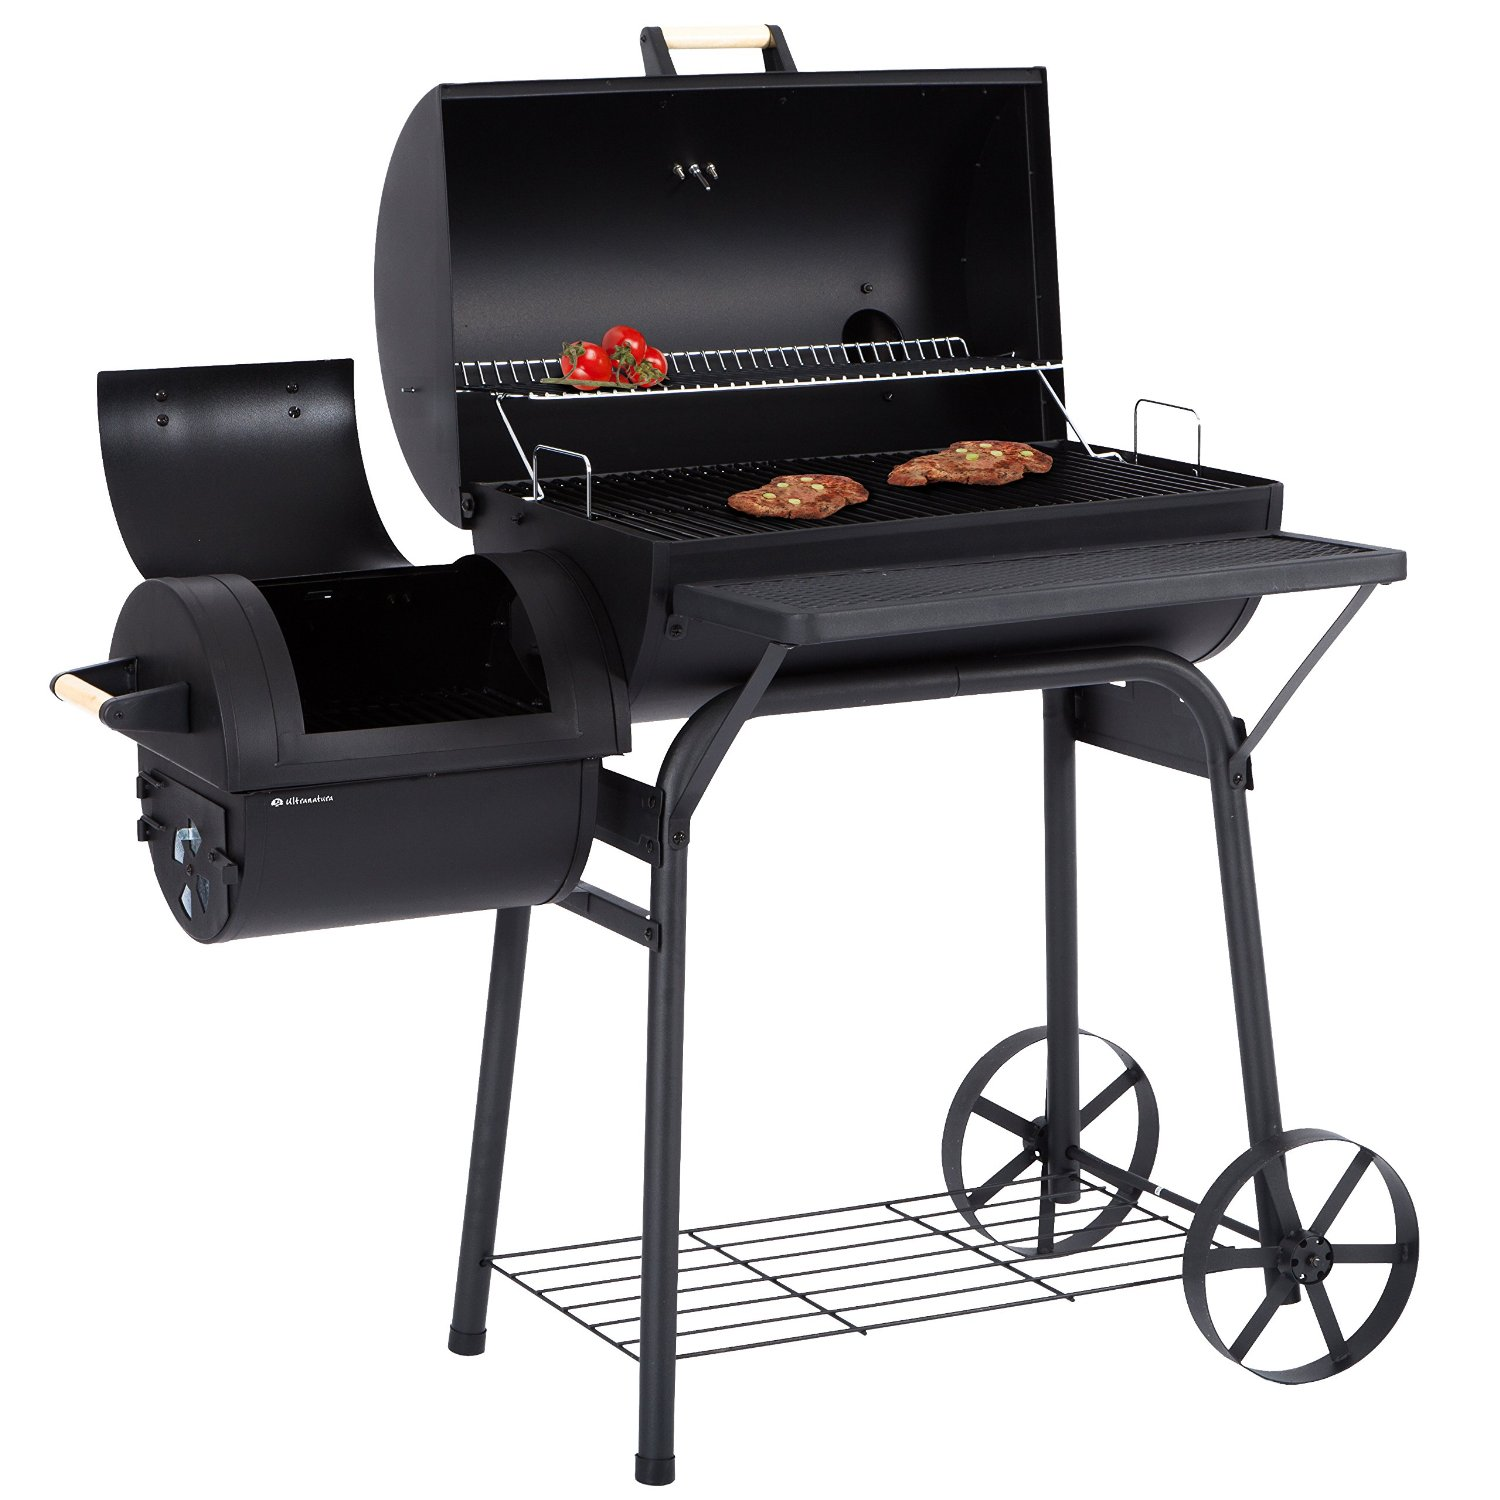 Tepro Grill Einbrennen Ultranatura Smoker Denver